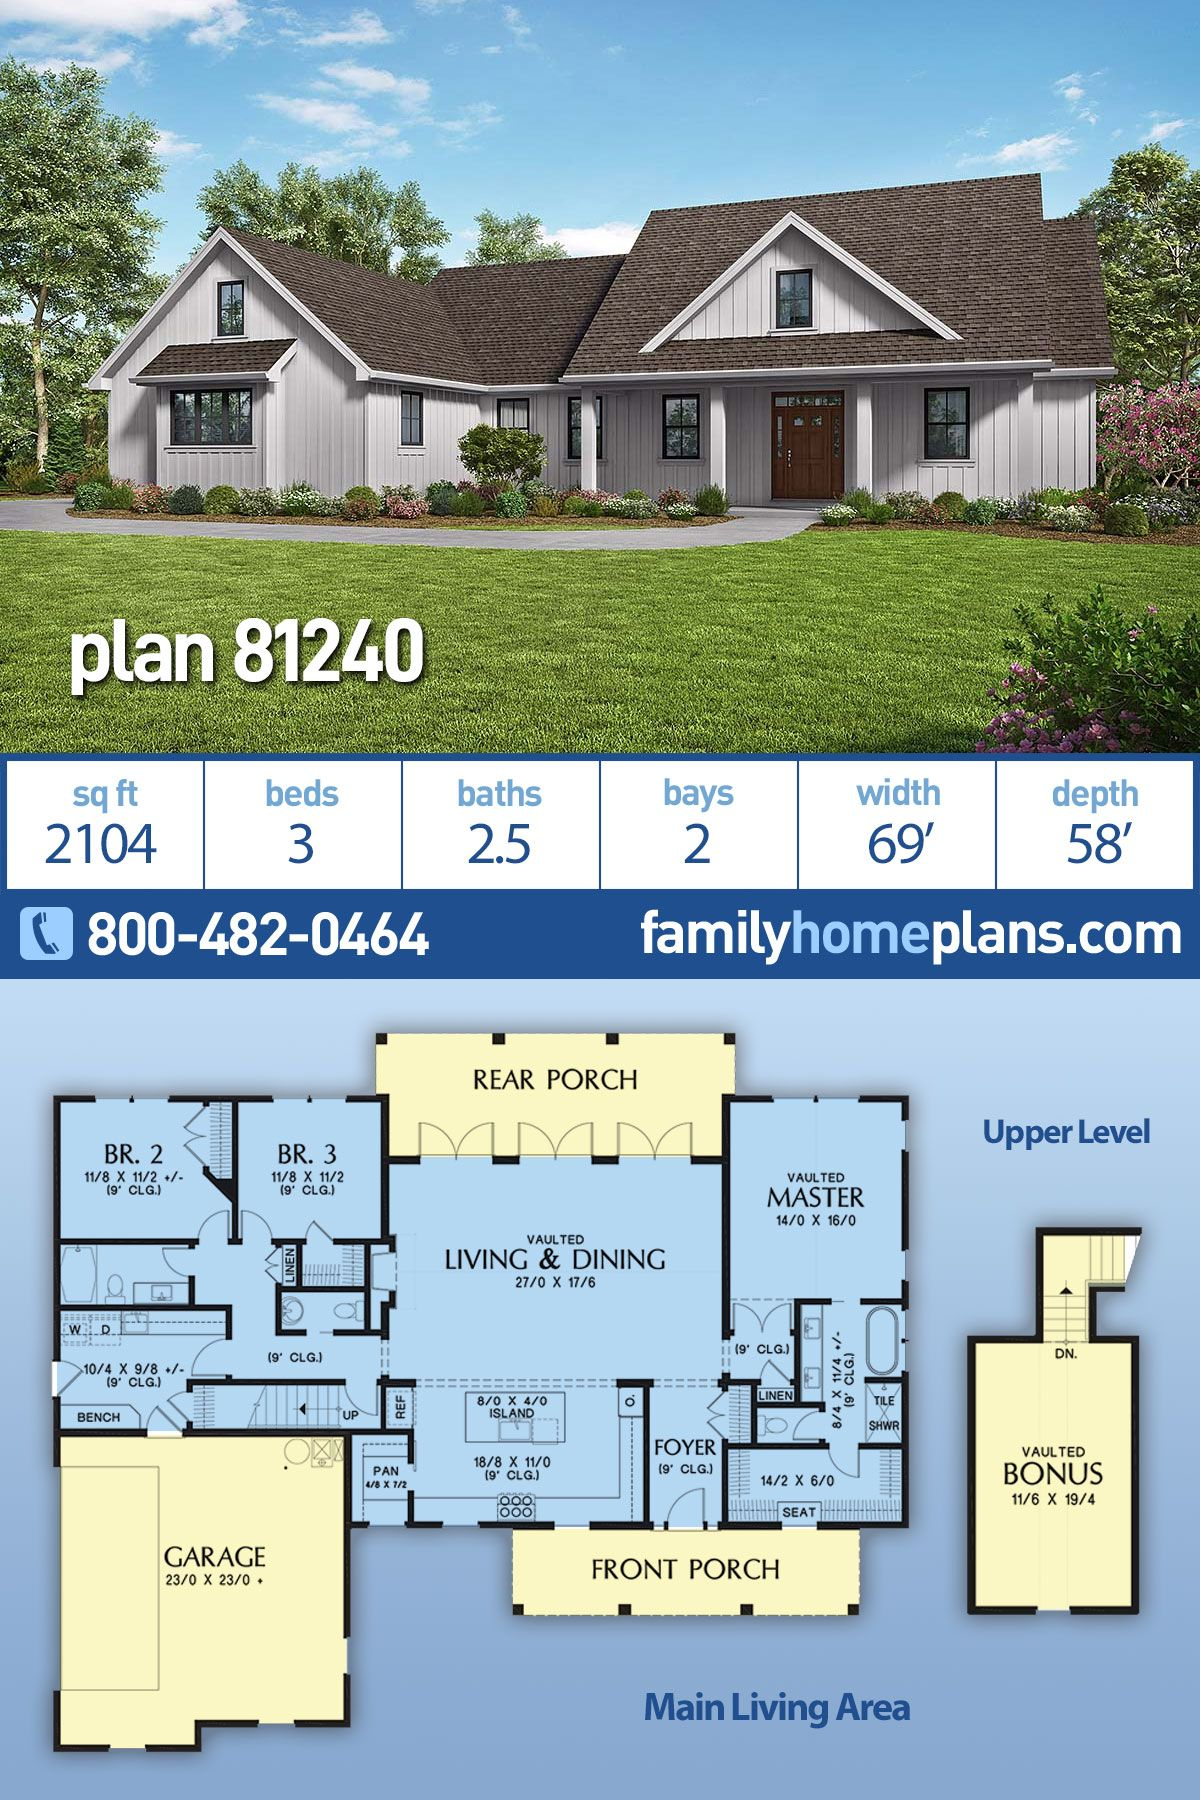 Southern Style House Plan 81240 With 3 Bed 3 Bath 2 Car Garage Family House Plans Modern Style House Plans Modern Farmhouse Plans